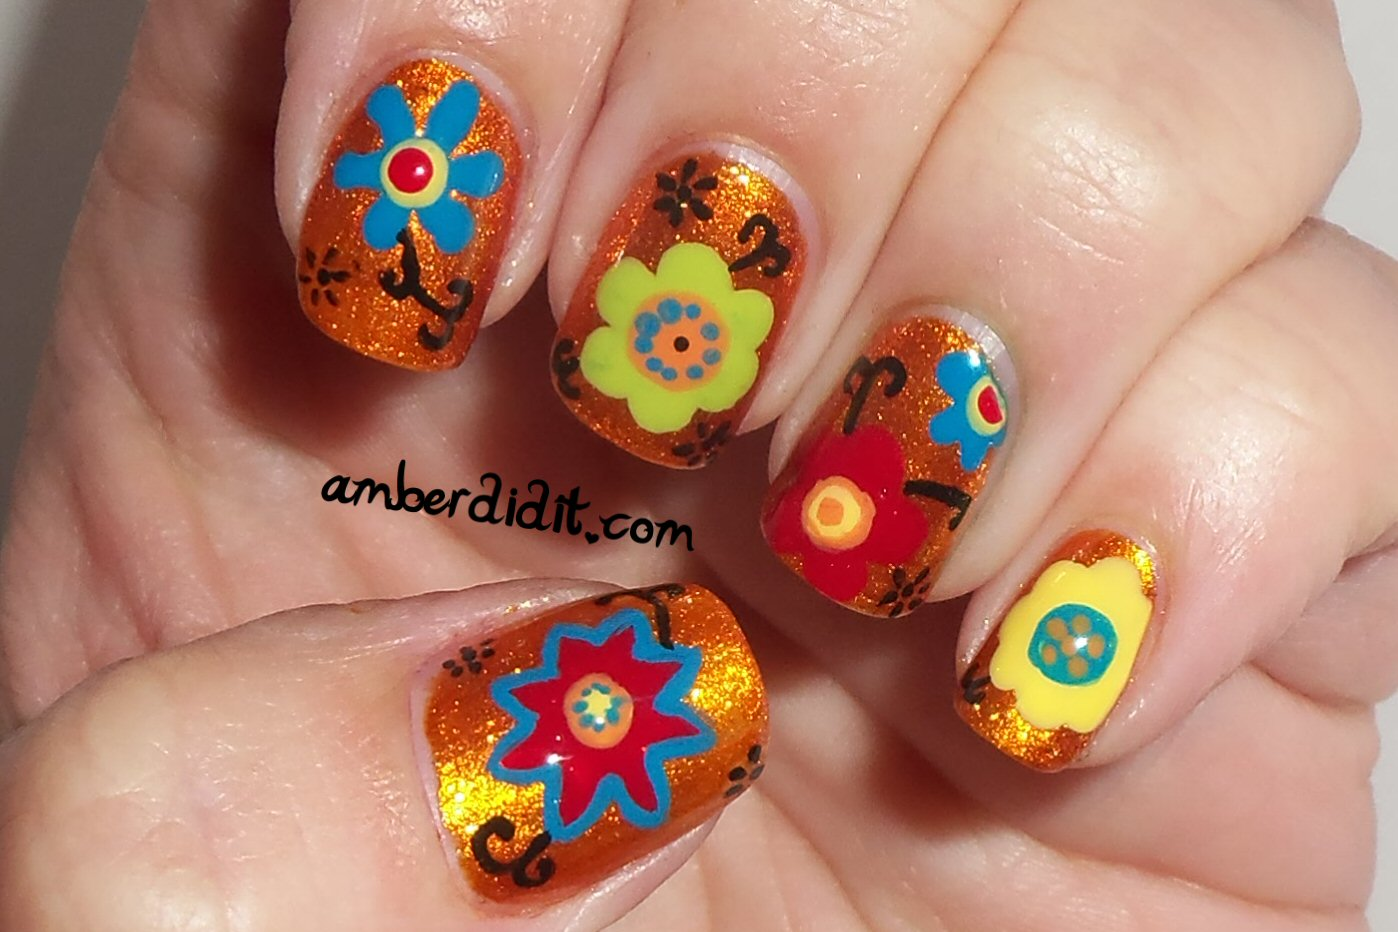 Amber did it!: Scrapbook Paper Inspired Nails